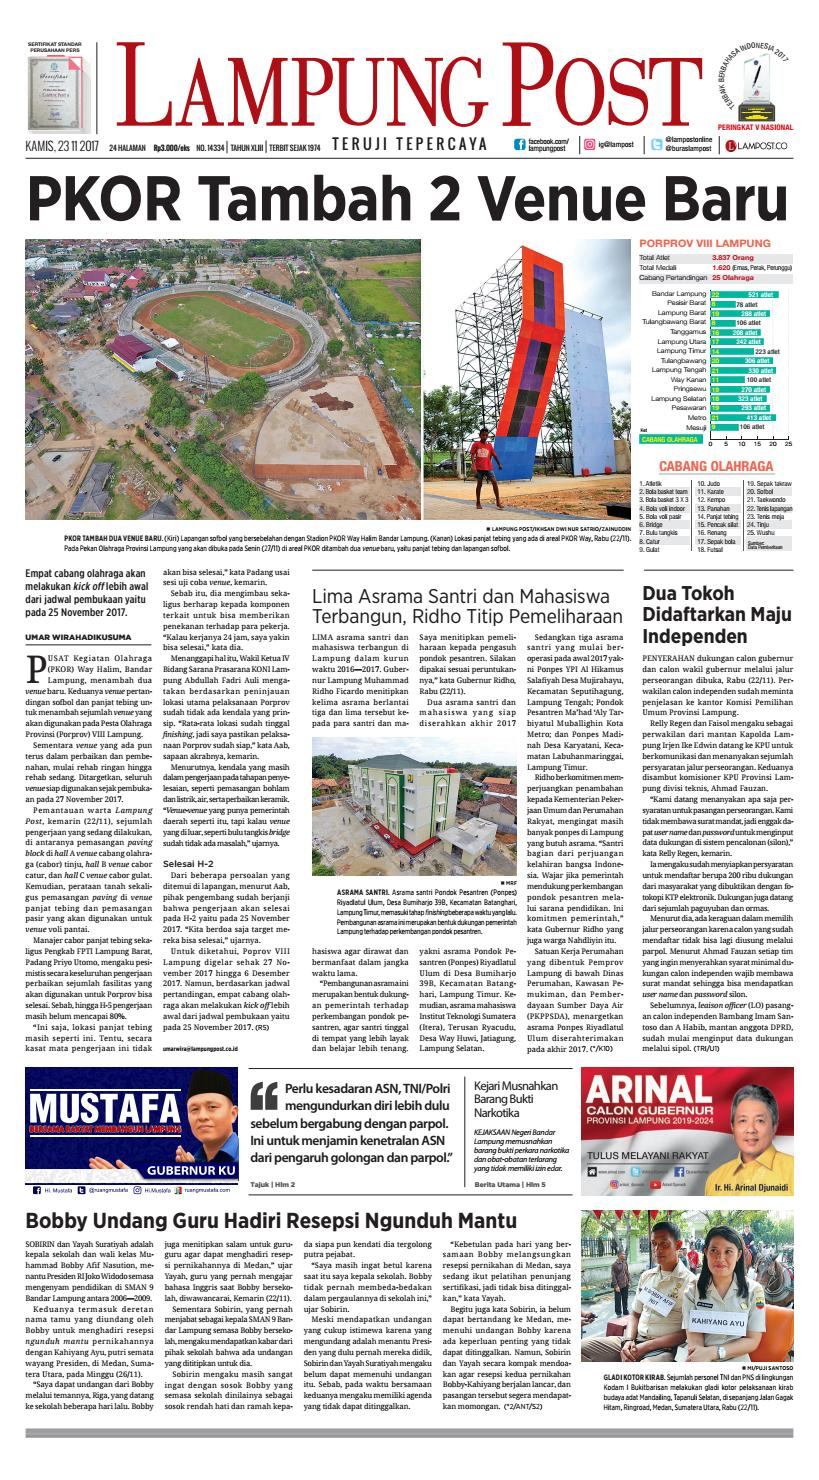 Lampung Post Kamis 23 November 2017 By Lampung Post Issuu